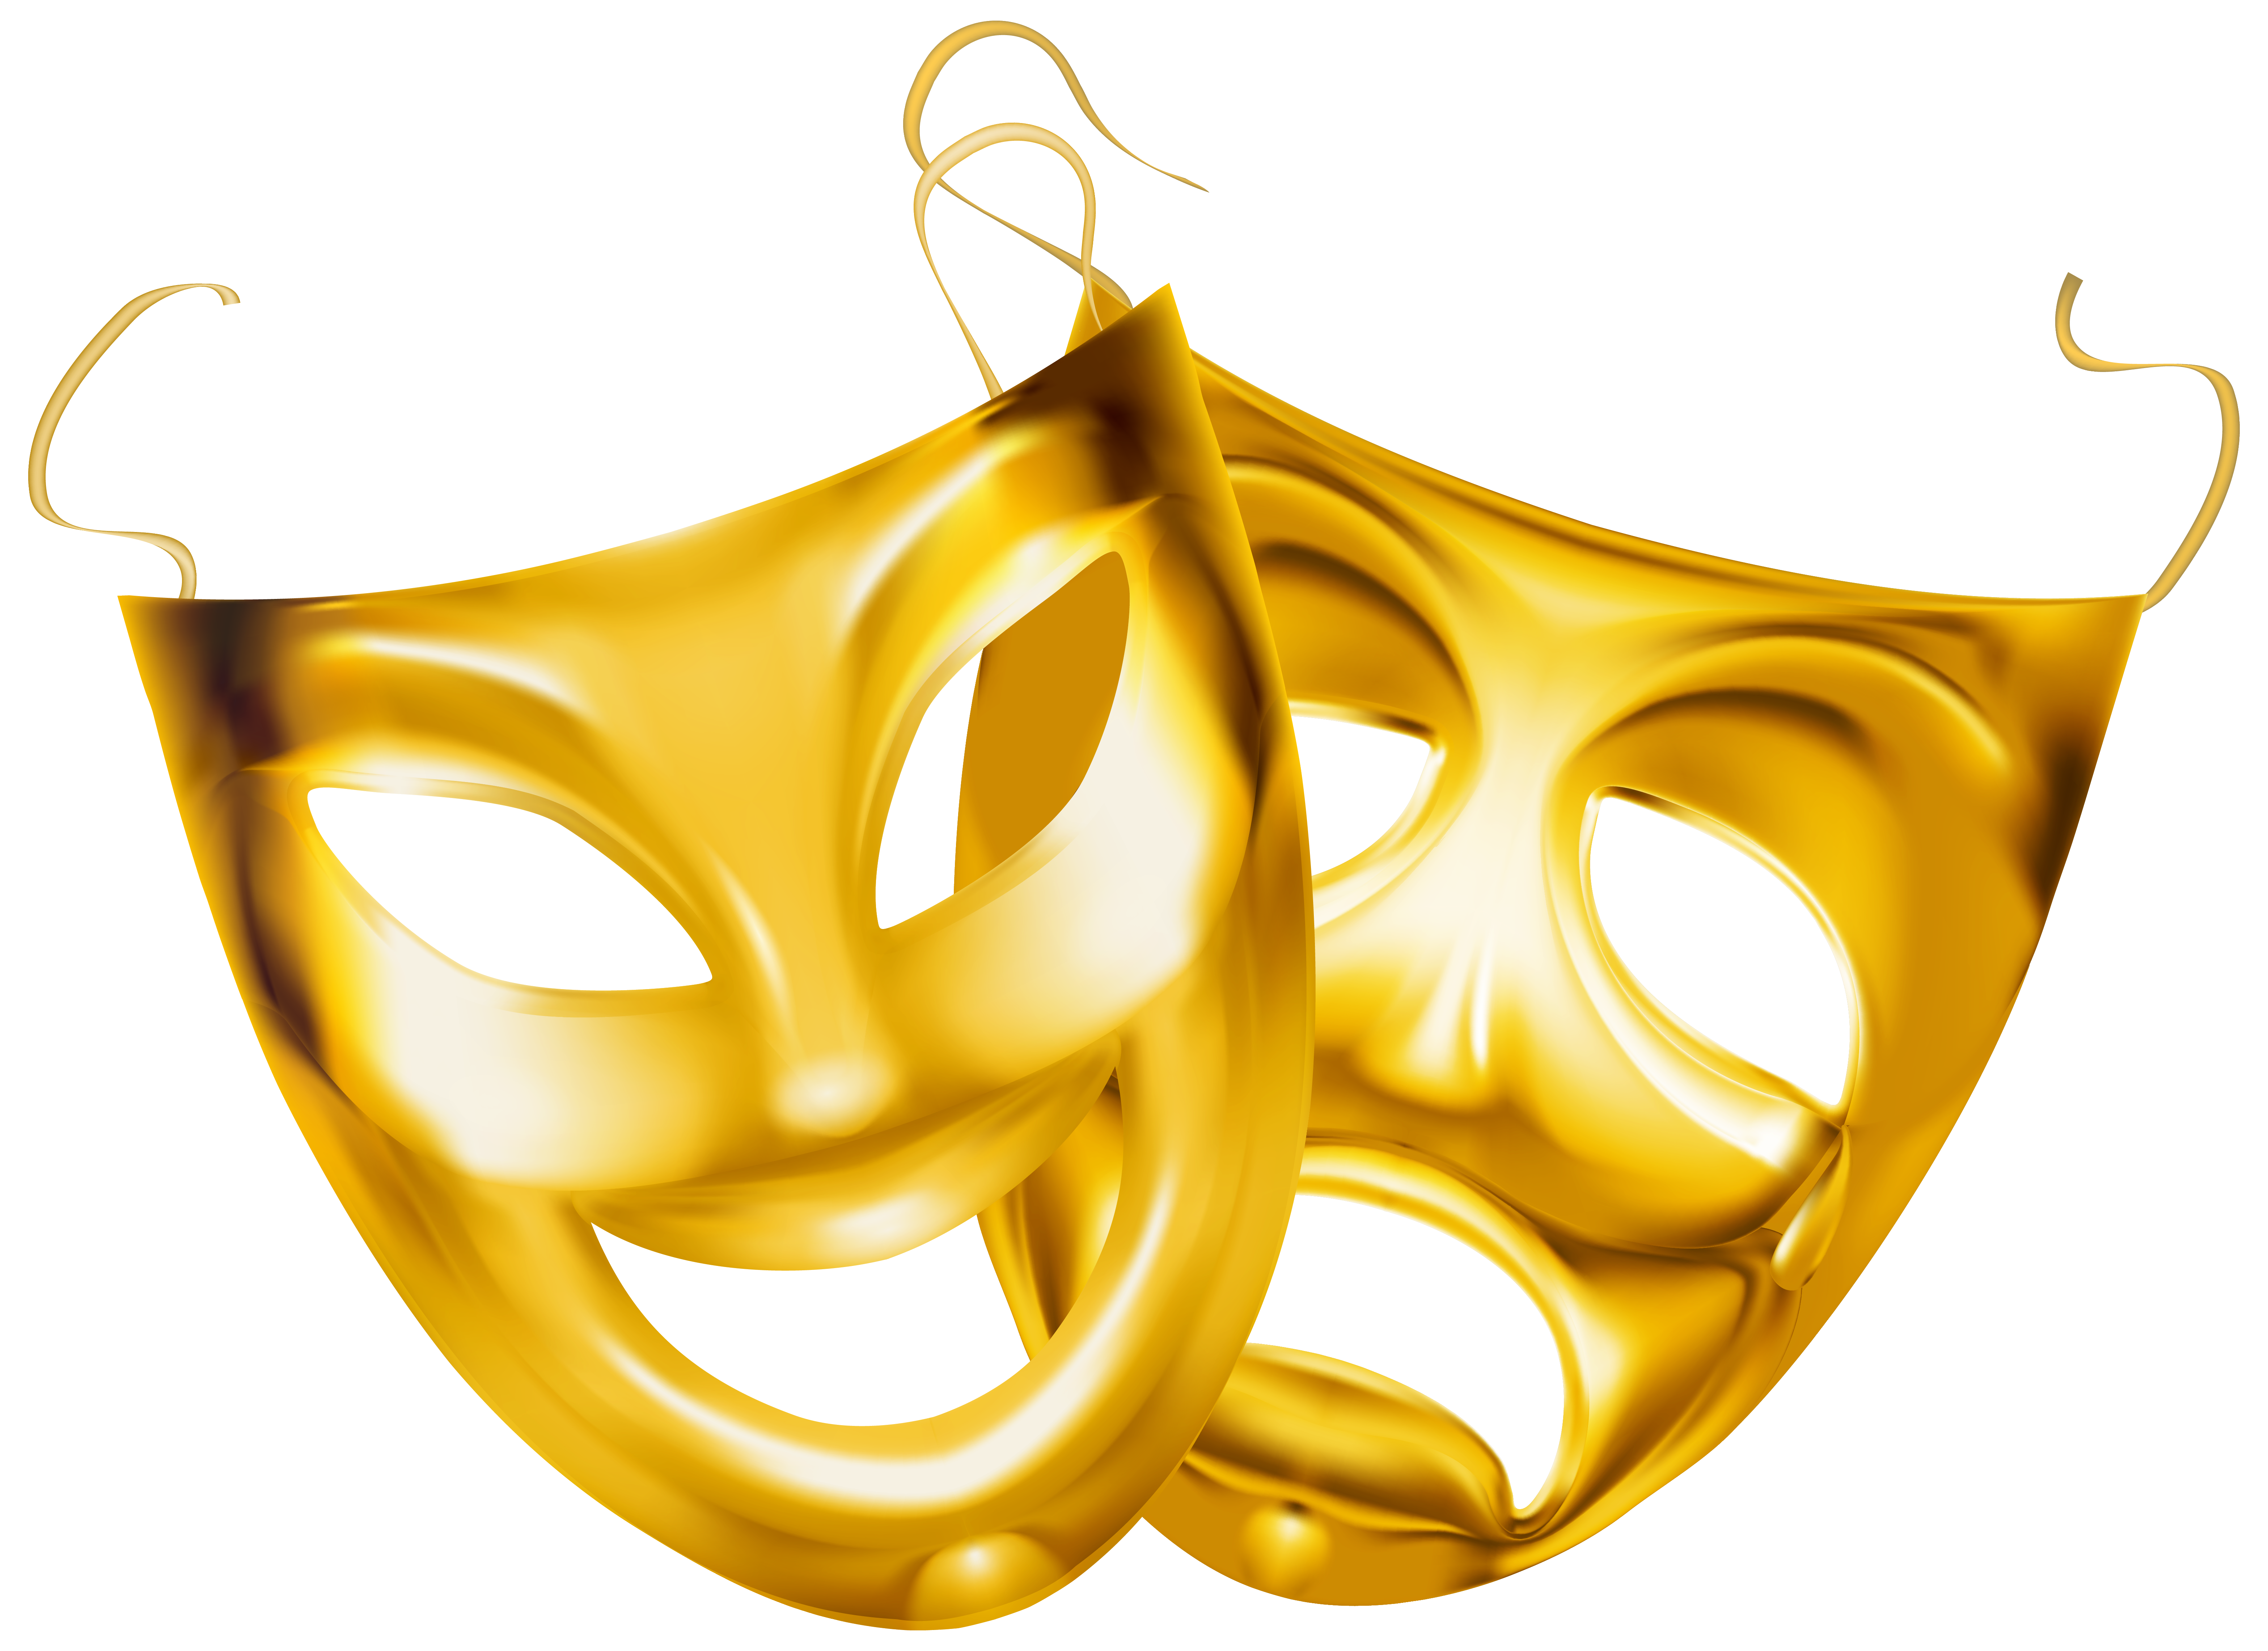 Gold Lv Logo Clipart Png.